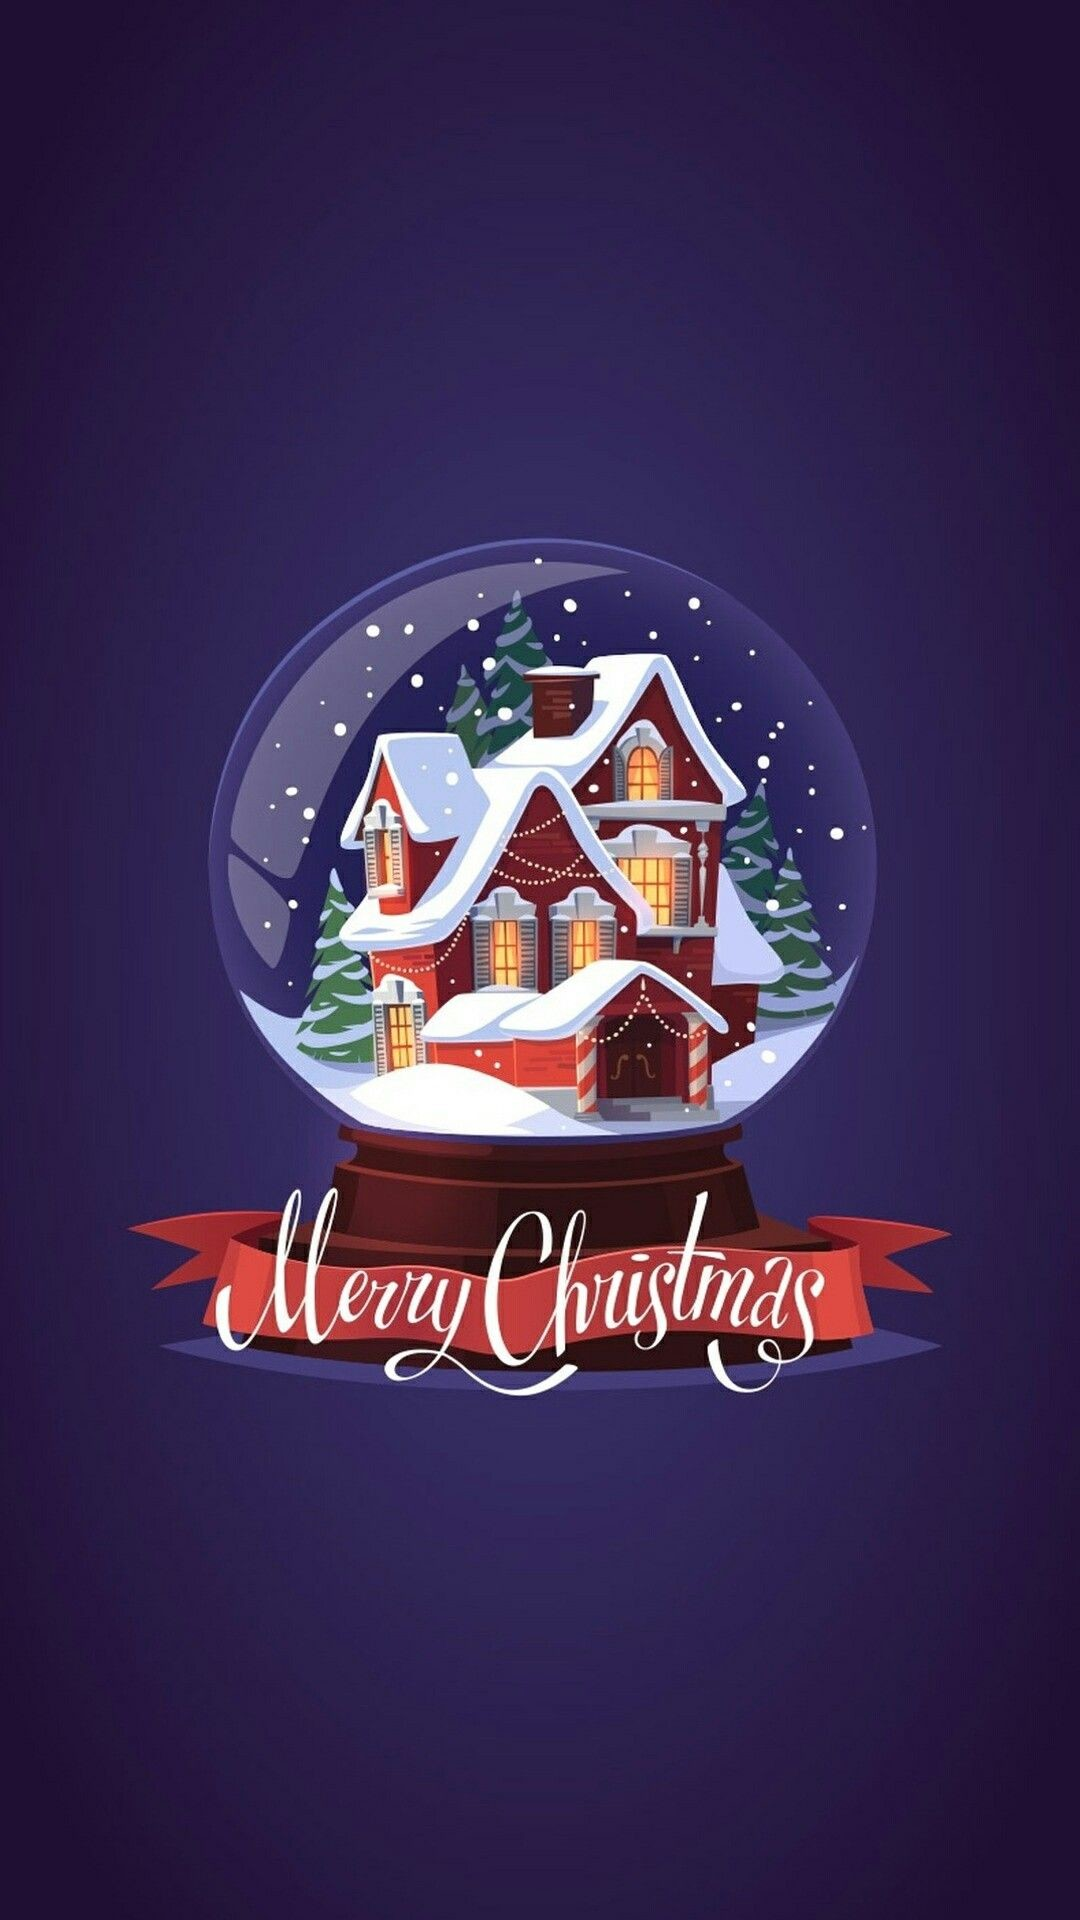 1080x1920 Merry Christmas snow globe. Holiday Wallpaper, Merry Christmas Wallpapers, Merry  Christmas Pictures,